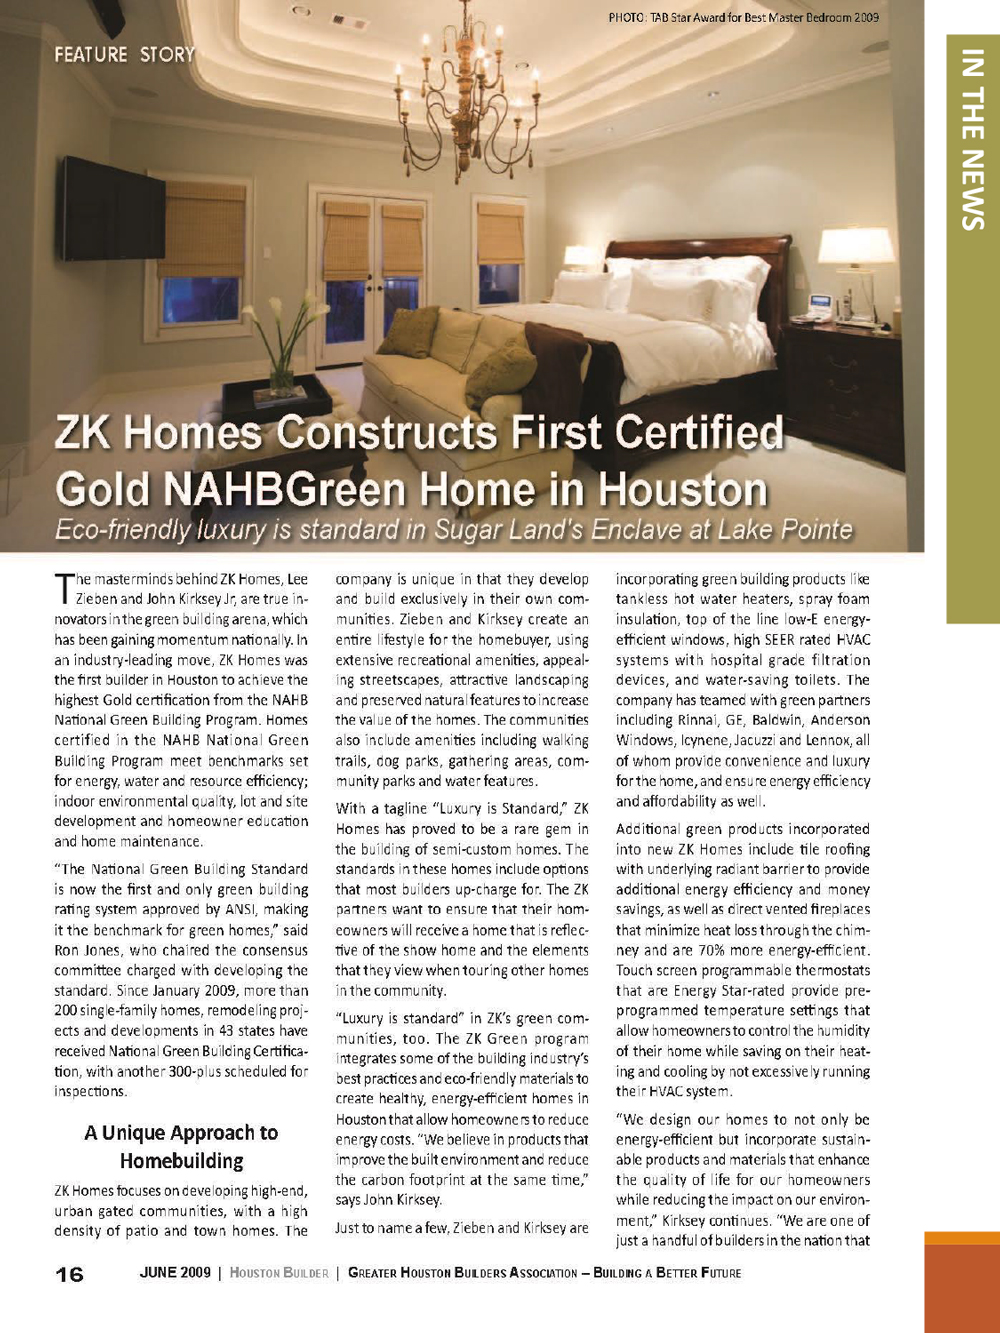 ZK-Homes-Constructs-First-Certified-Gold-NAHB-Green-Home-n-Houston